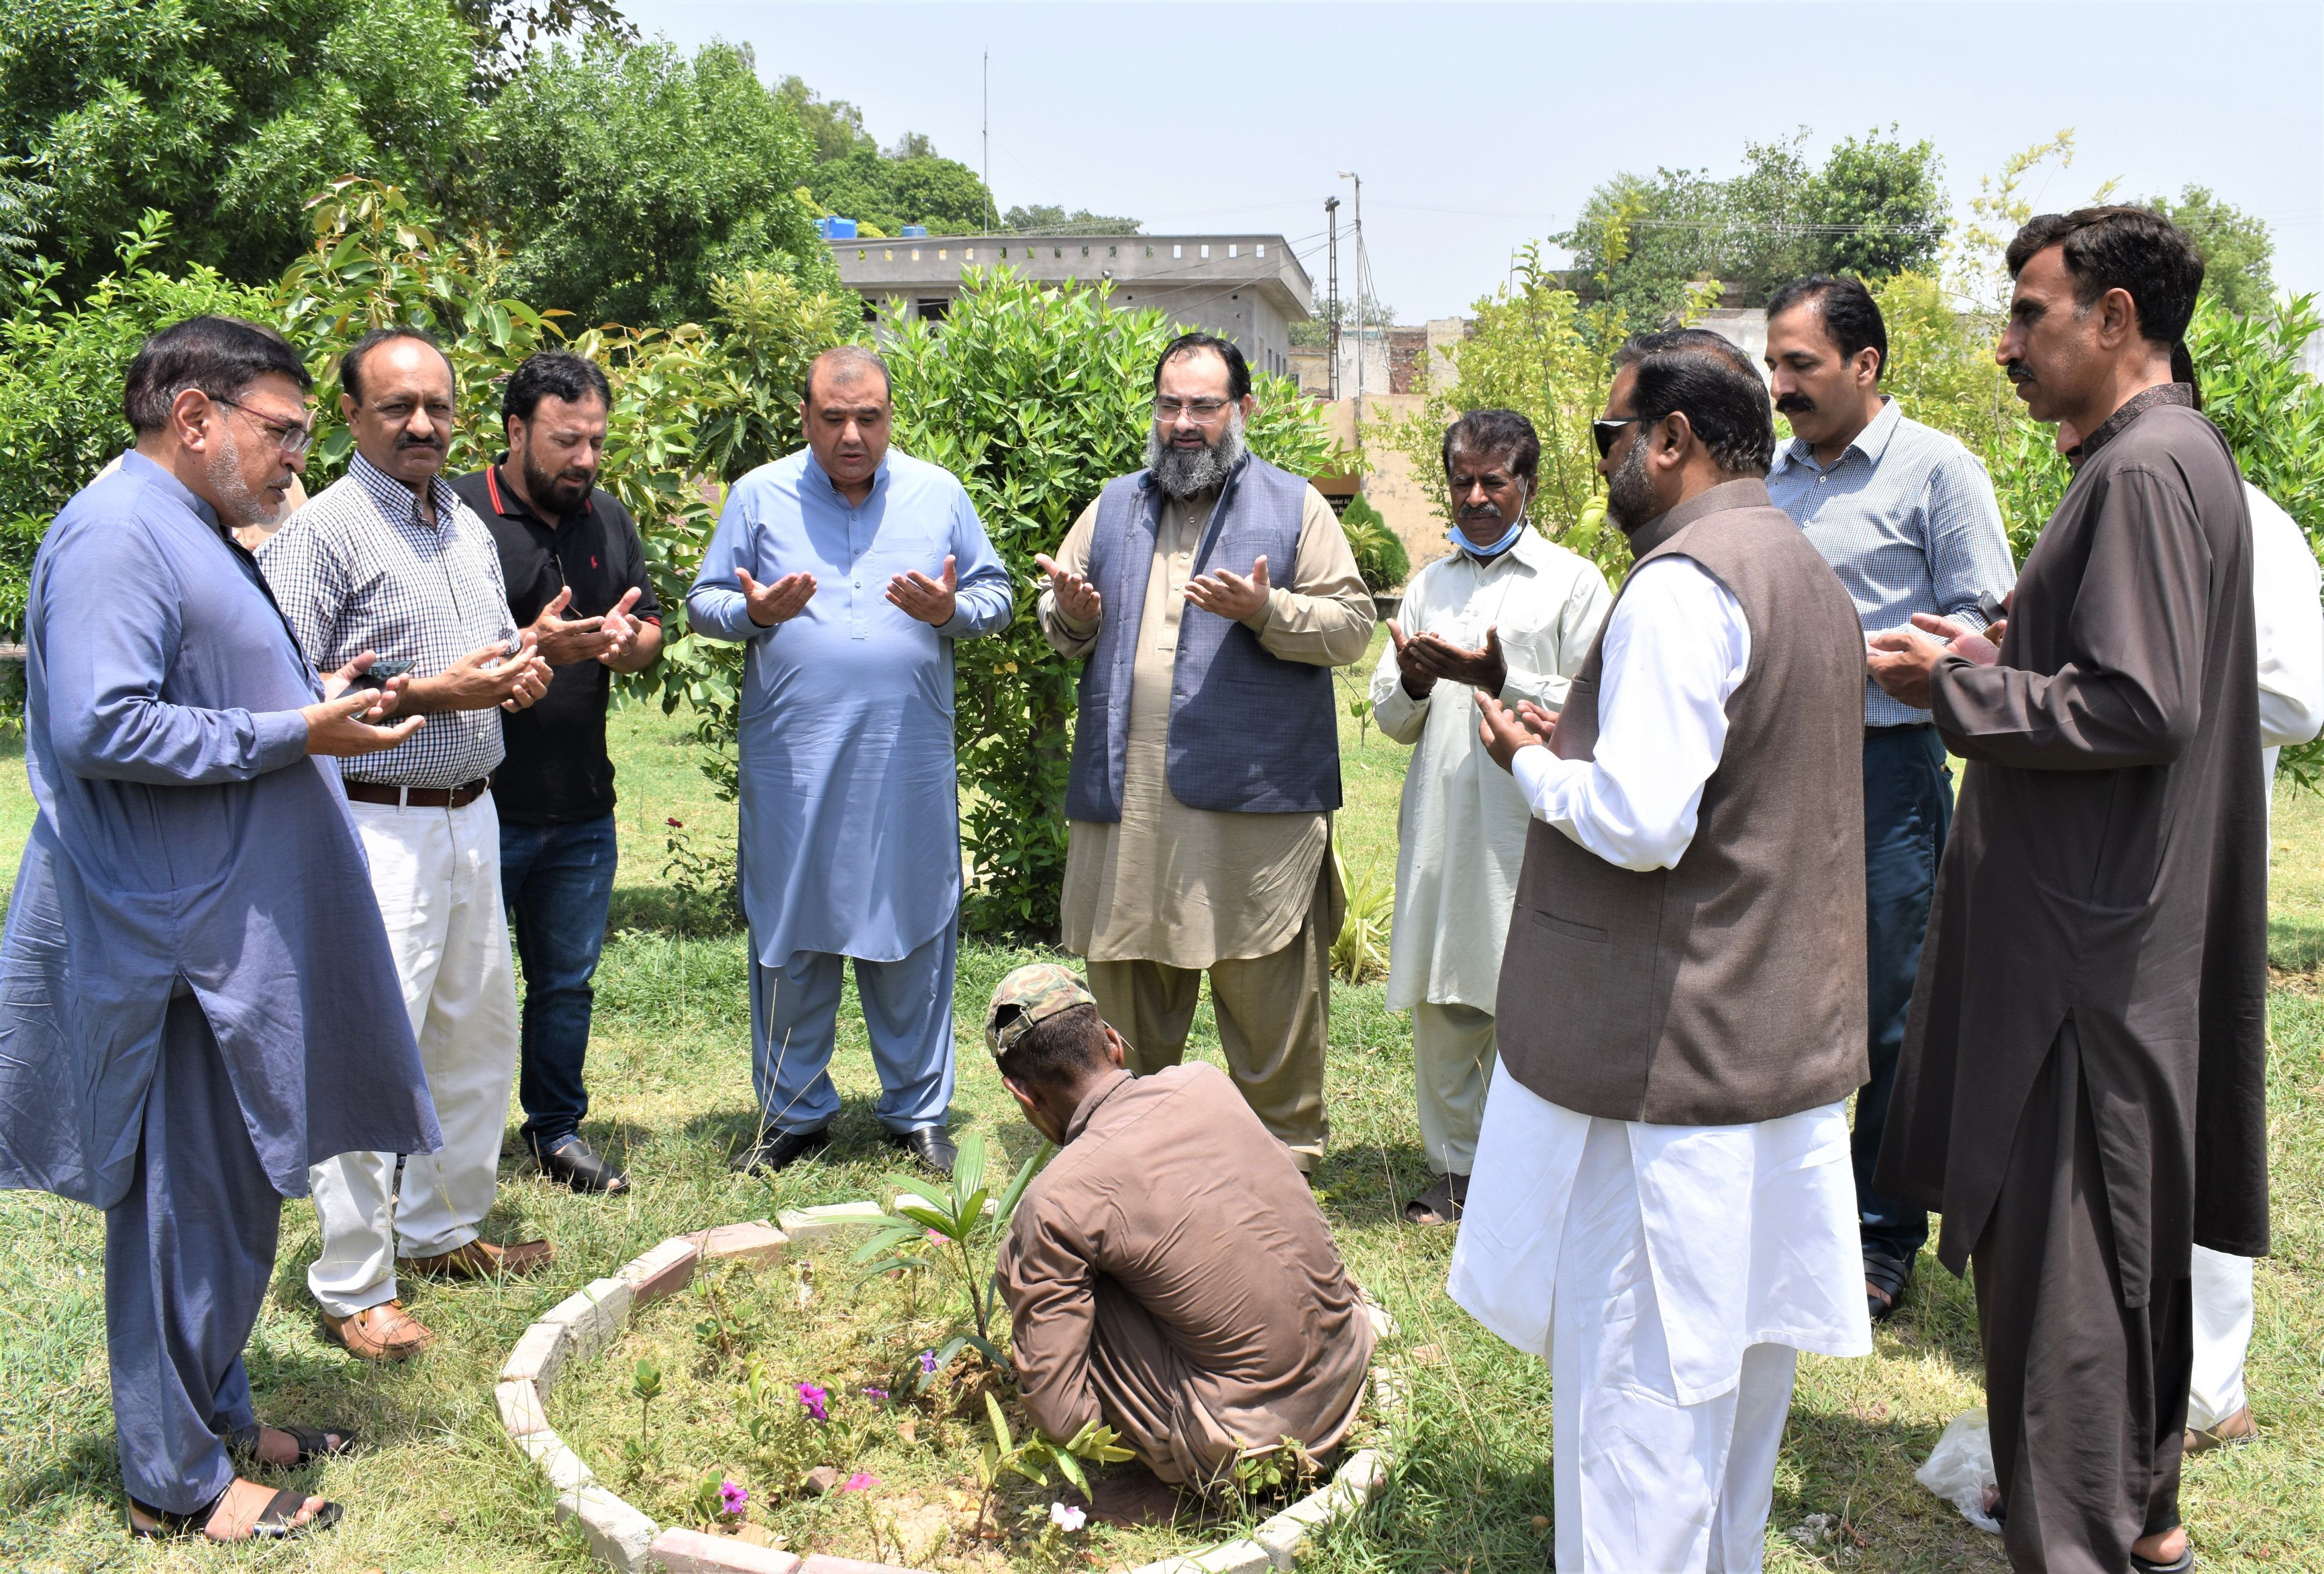 On July 06, 2021, Mr. Khuram Aslam, Senior Vice President, Sialkot Chamber of Commerce and Industry planted a tree sapling at the Government Graduate College Sialkot (Qila) under Plantation drive (Clean Green Pakistan) showing his commitment to a green future and doing a part in reversing climate change. Mr. Bilal Dar and Sheikh Zahid Hameed, Executive Committee Members SCCI and Mr. Ejaz Ghauree also planted a tree sapling.